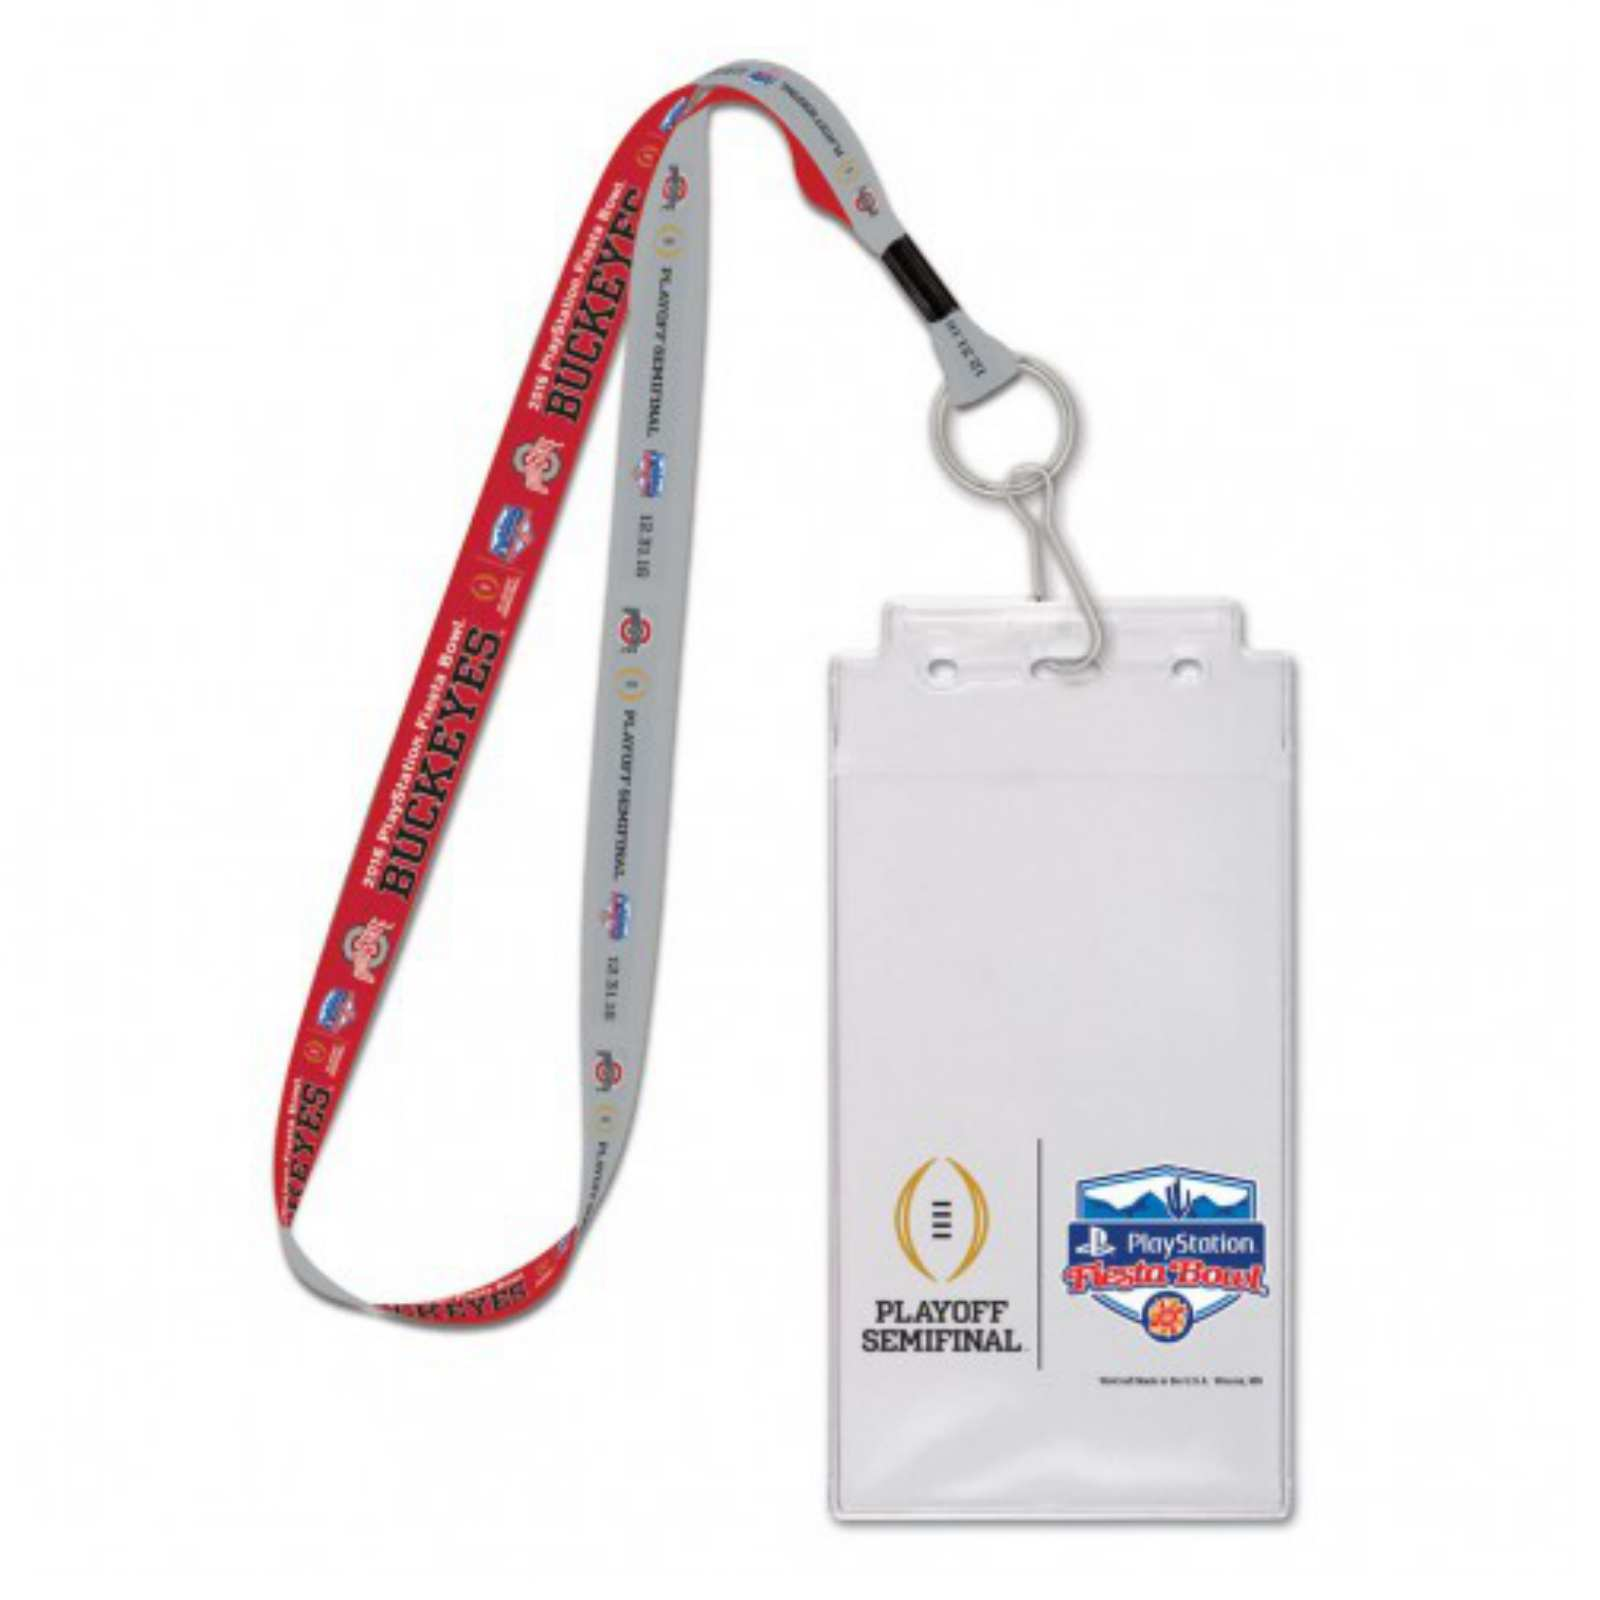 COLORADO ROCKIES LANYARD WITH TICKET HOLDER PLUS COLLECTIBLE PLAYER CARD